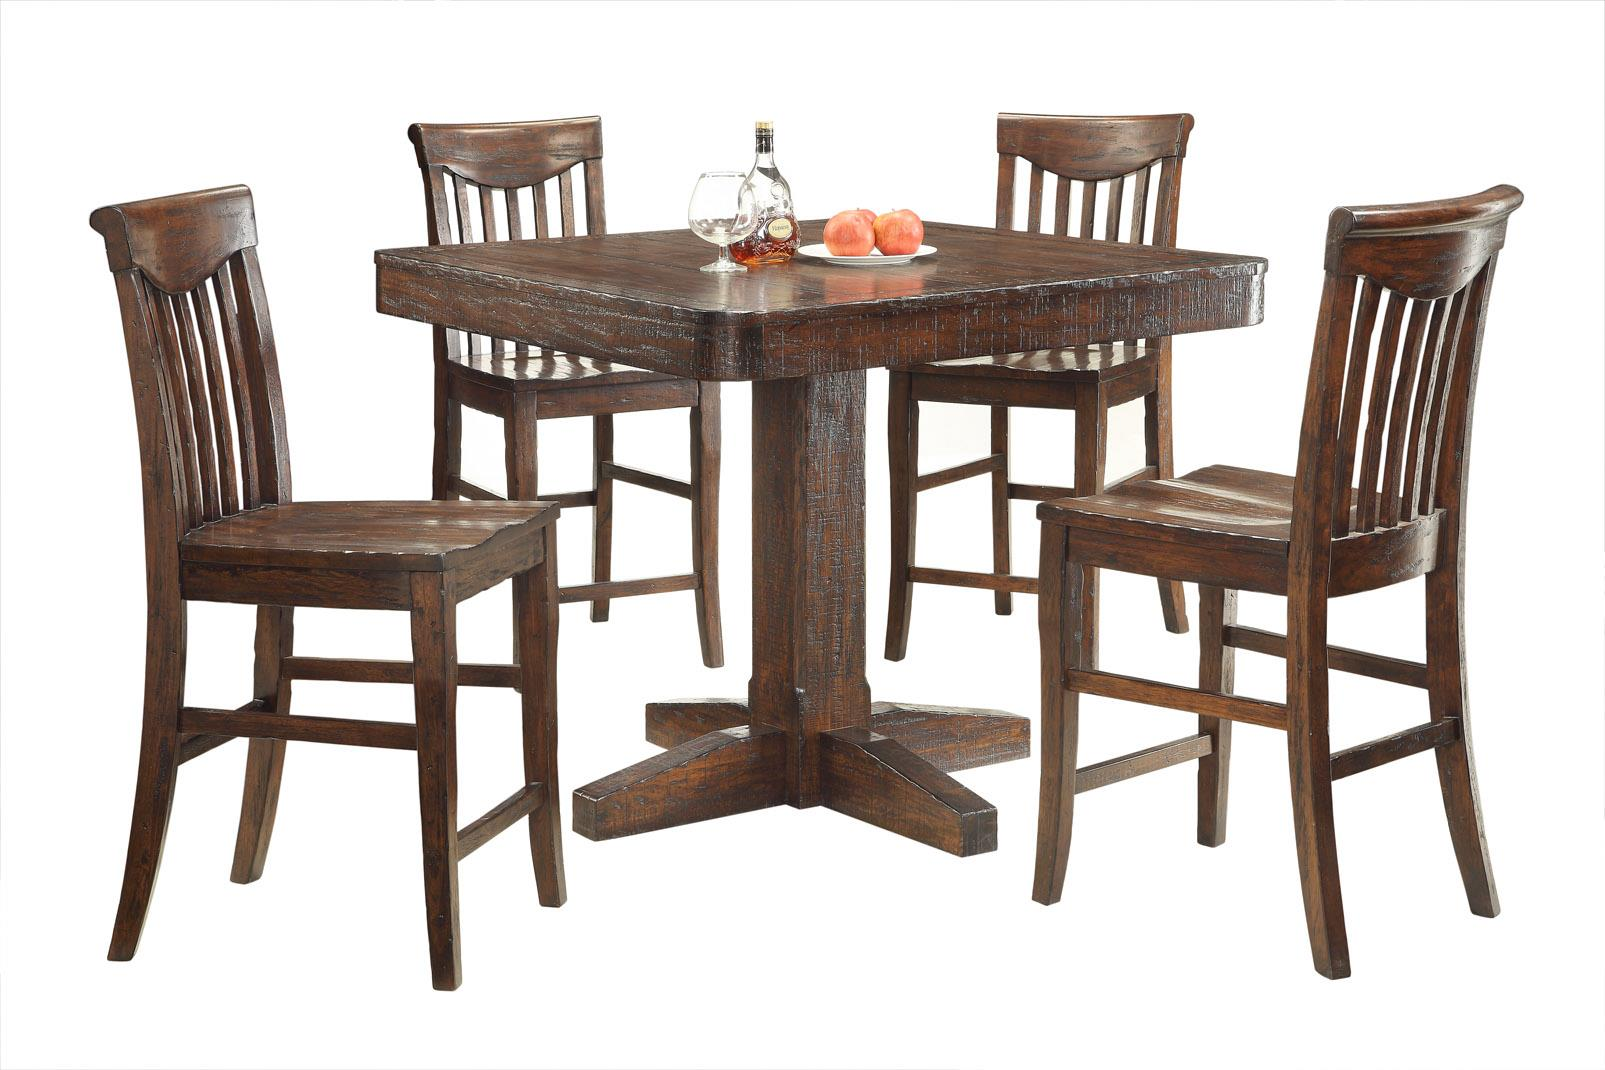 E c i furniture gettysburg 5 piece counter height table for Table 6 kitchen and bar canton ohio